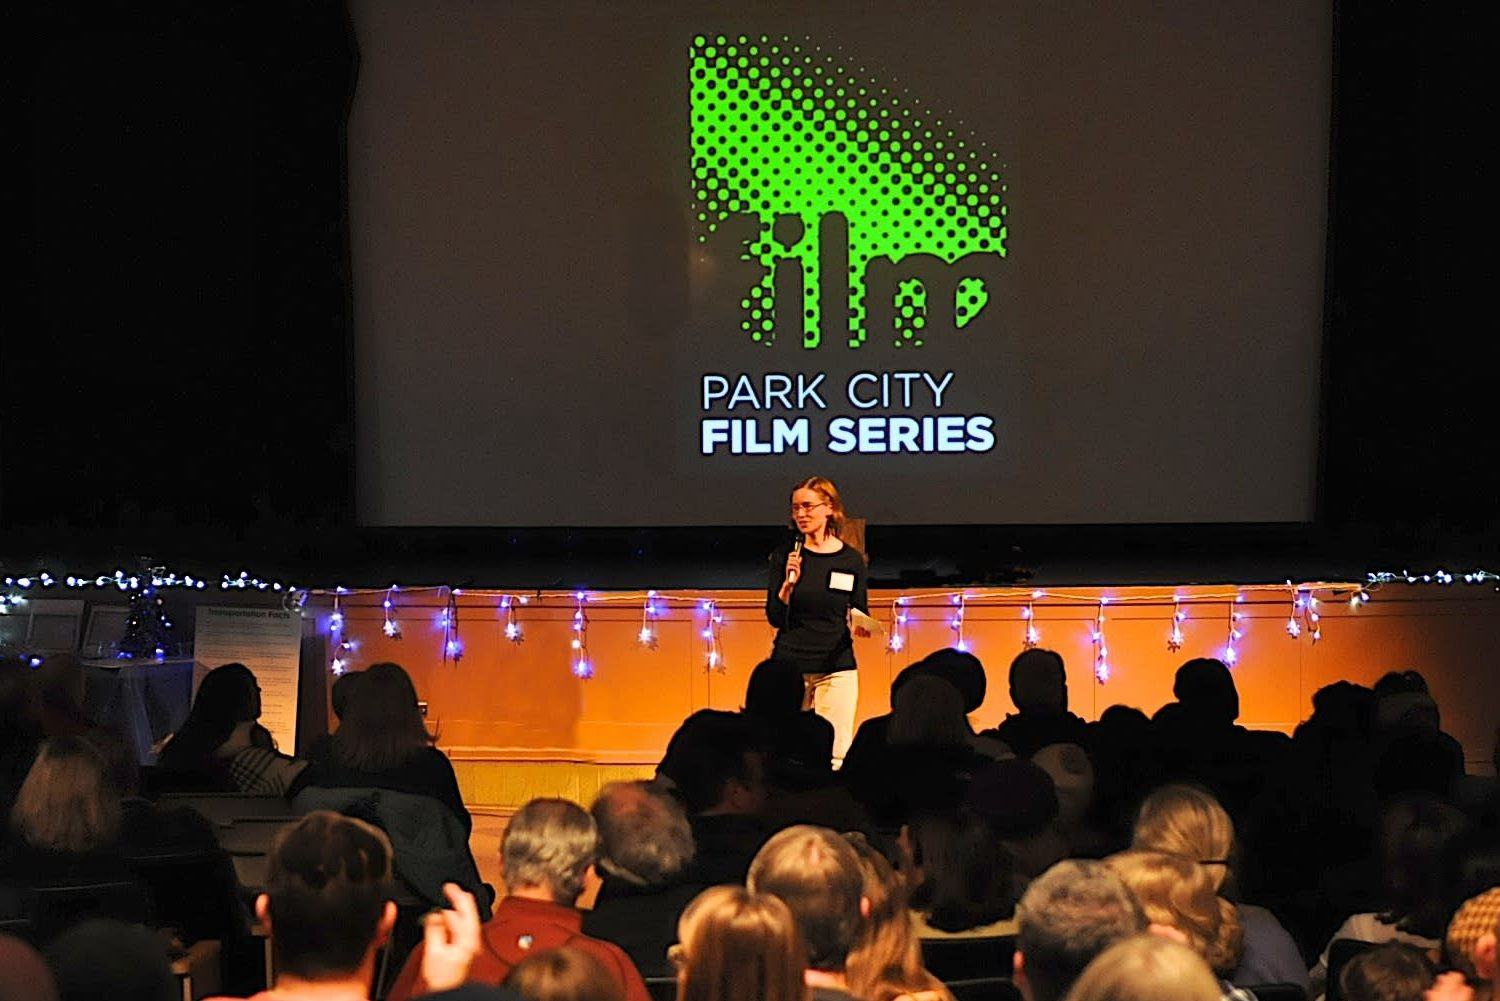 Park City Film Series